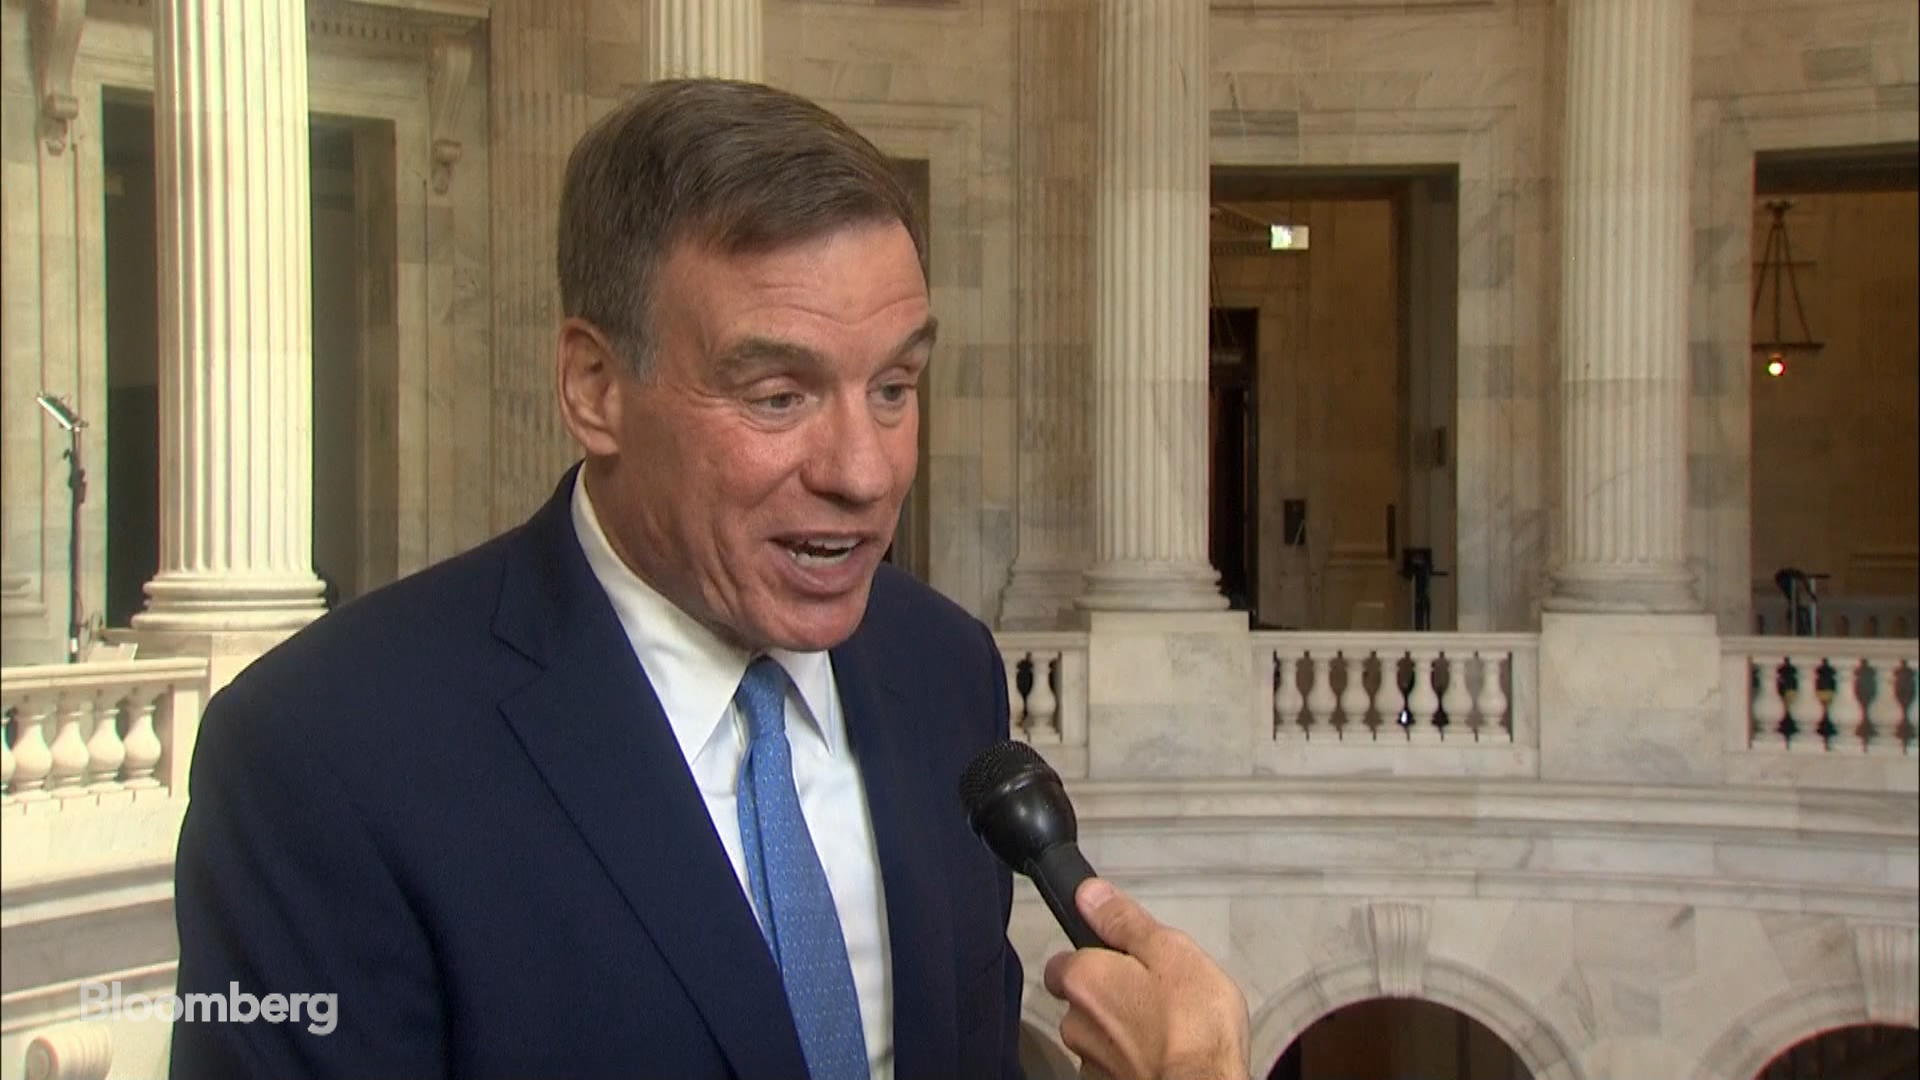 Sen. Warner Says Facebook Self-Regulation 'Not Going to Cut it'